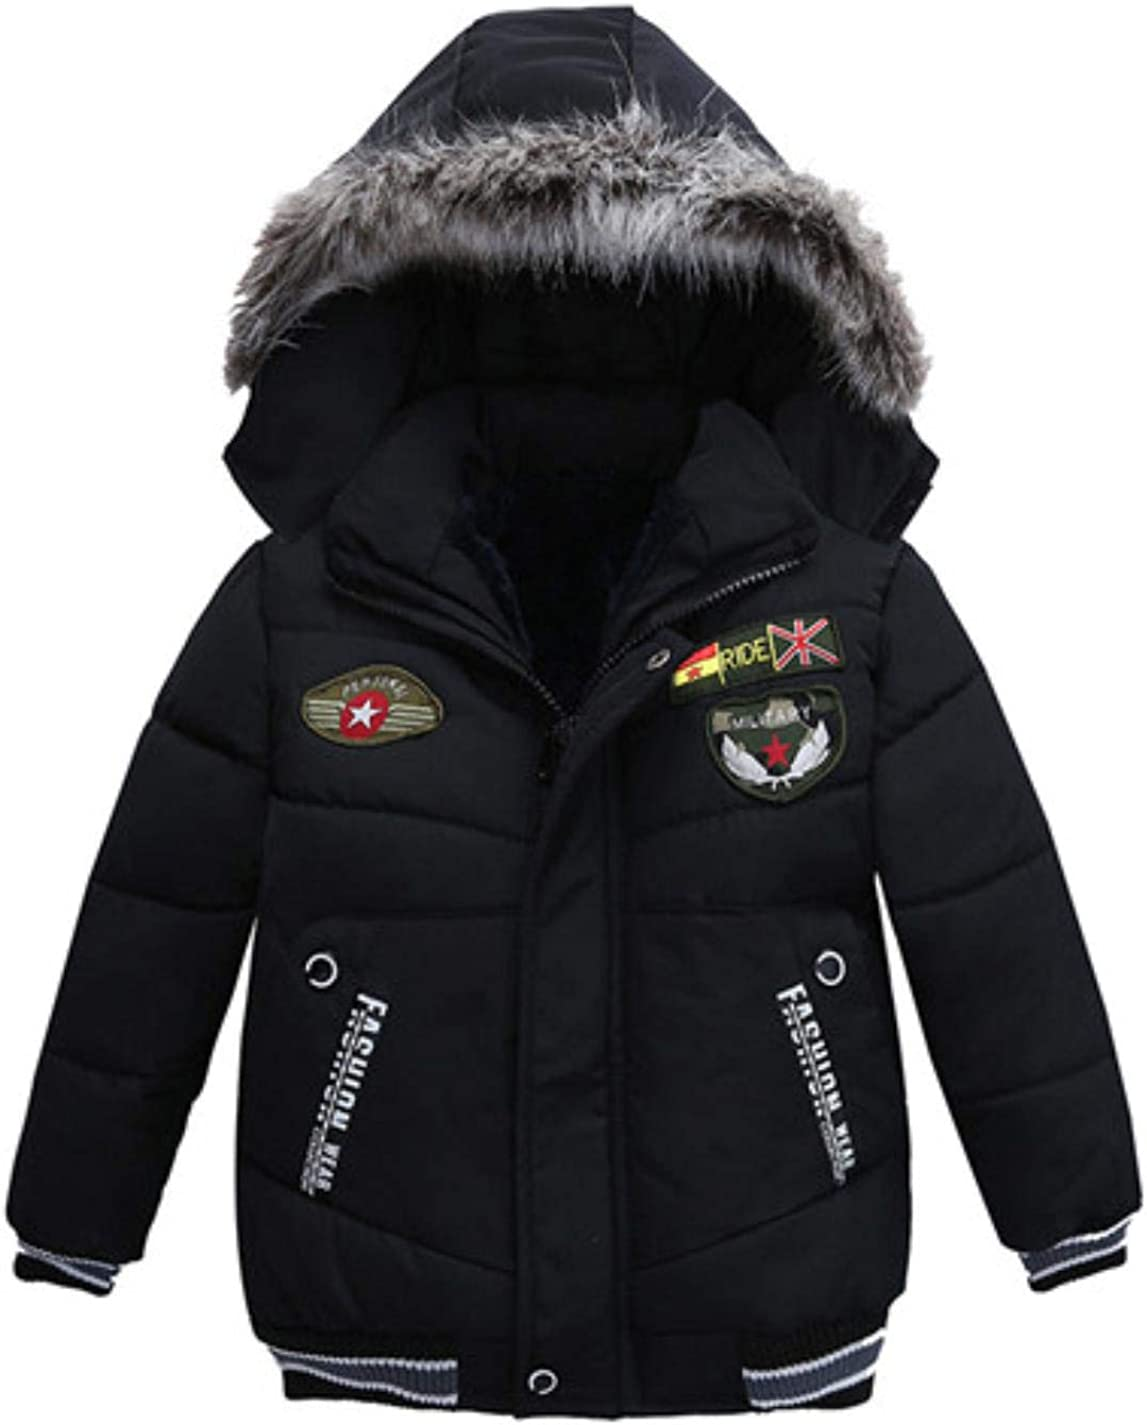 LzCxZDKN Baby Boys Girls Warm Down Jacket Hooded Children Solid Outerwear